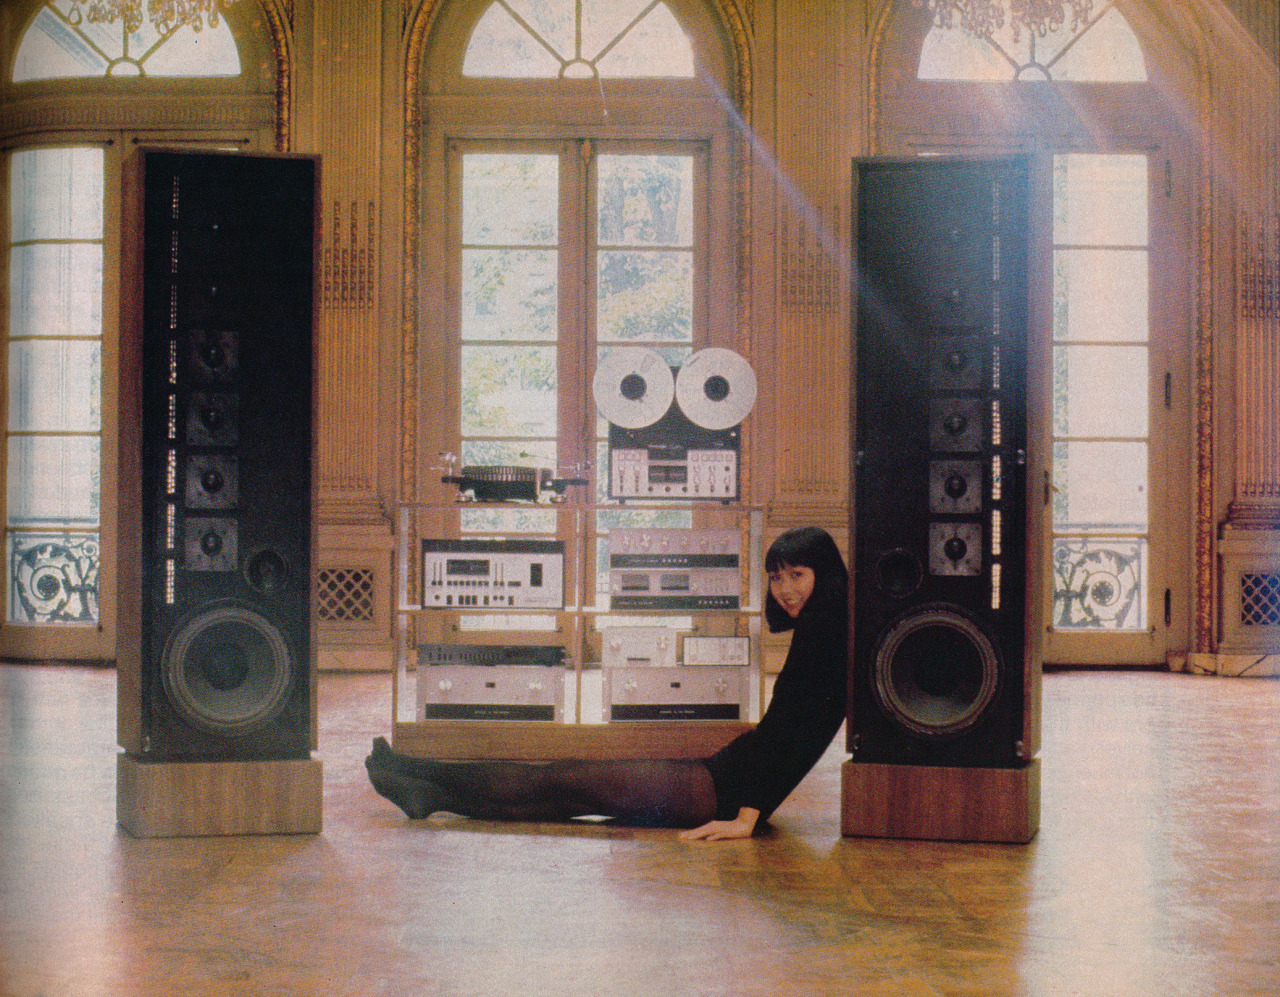 Toys for boys: Tech Hifi catalogs of vintage stereo